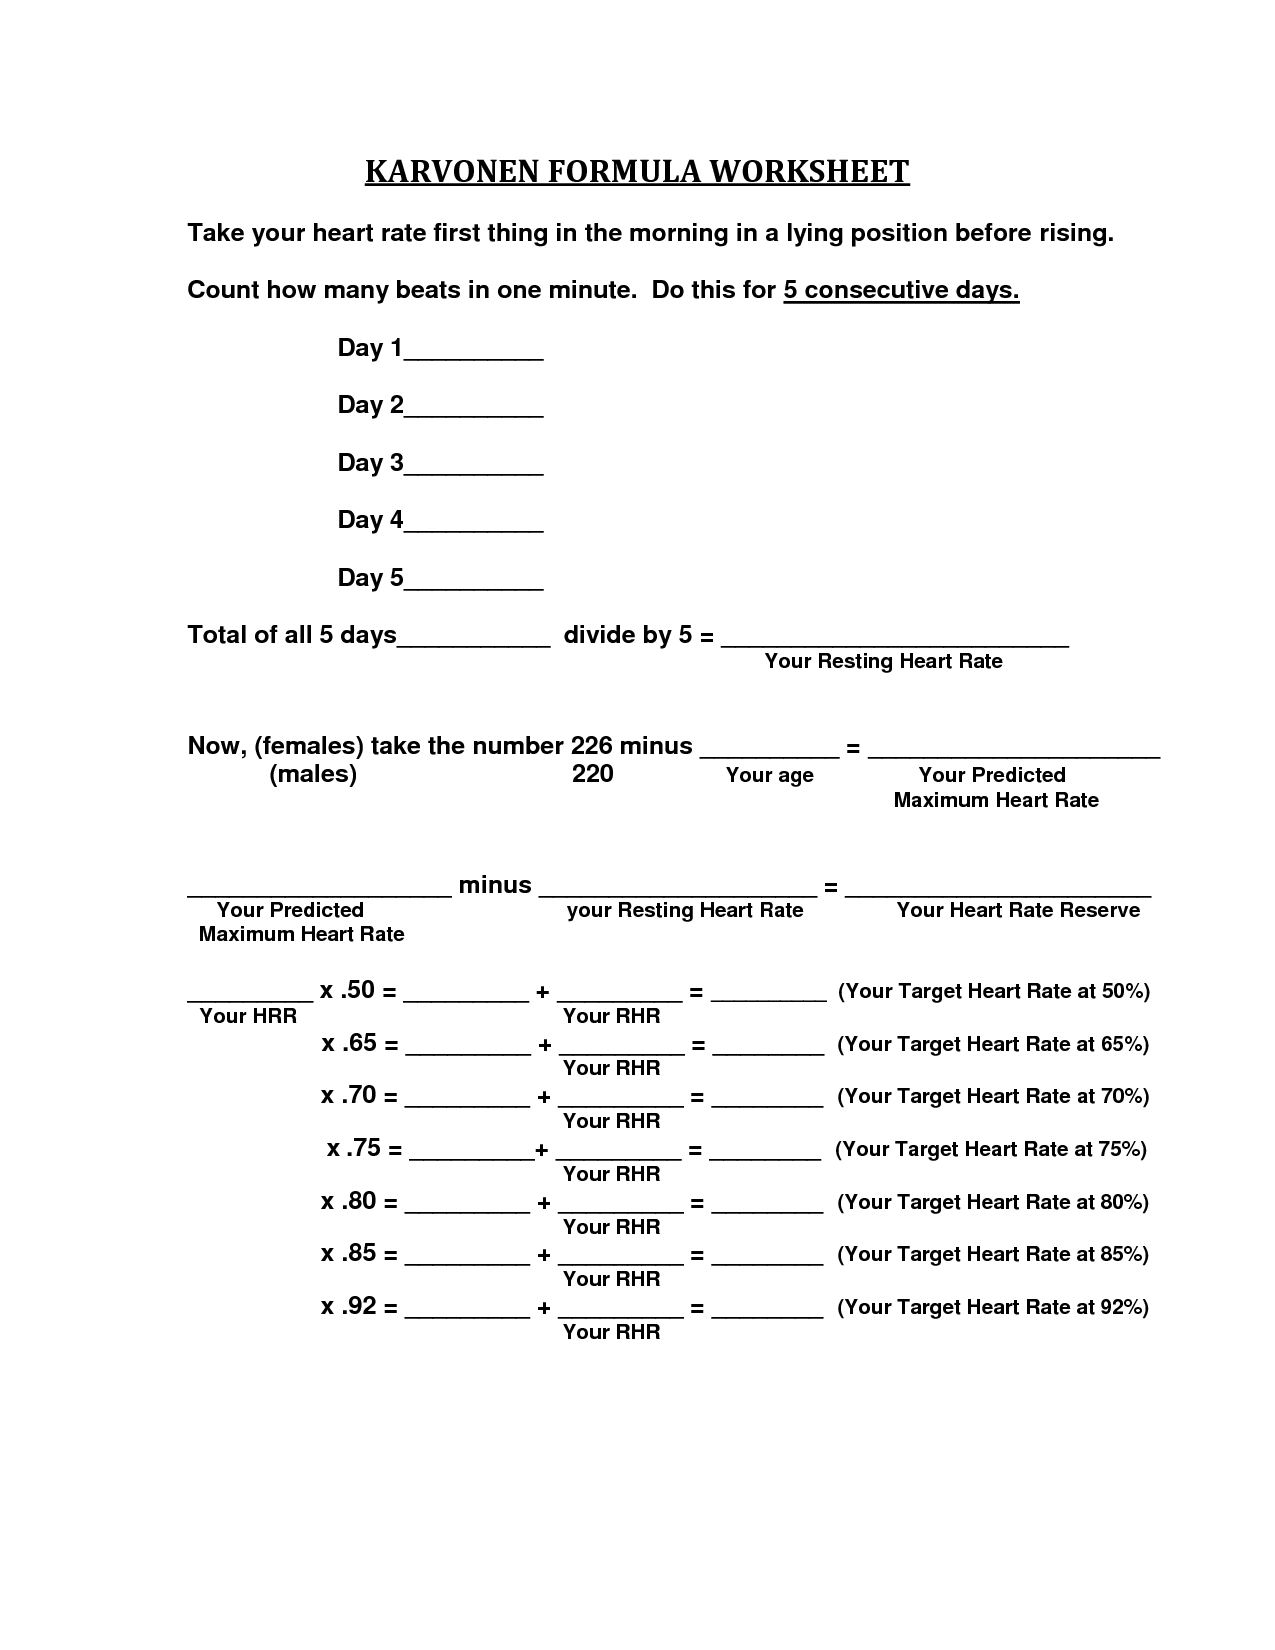 Karvonen Formula Worksheet